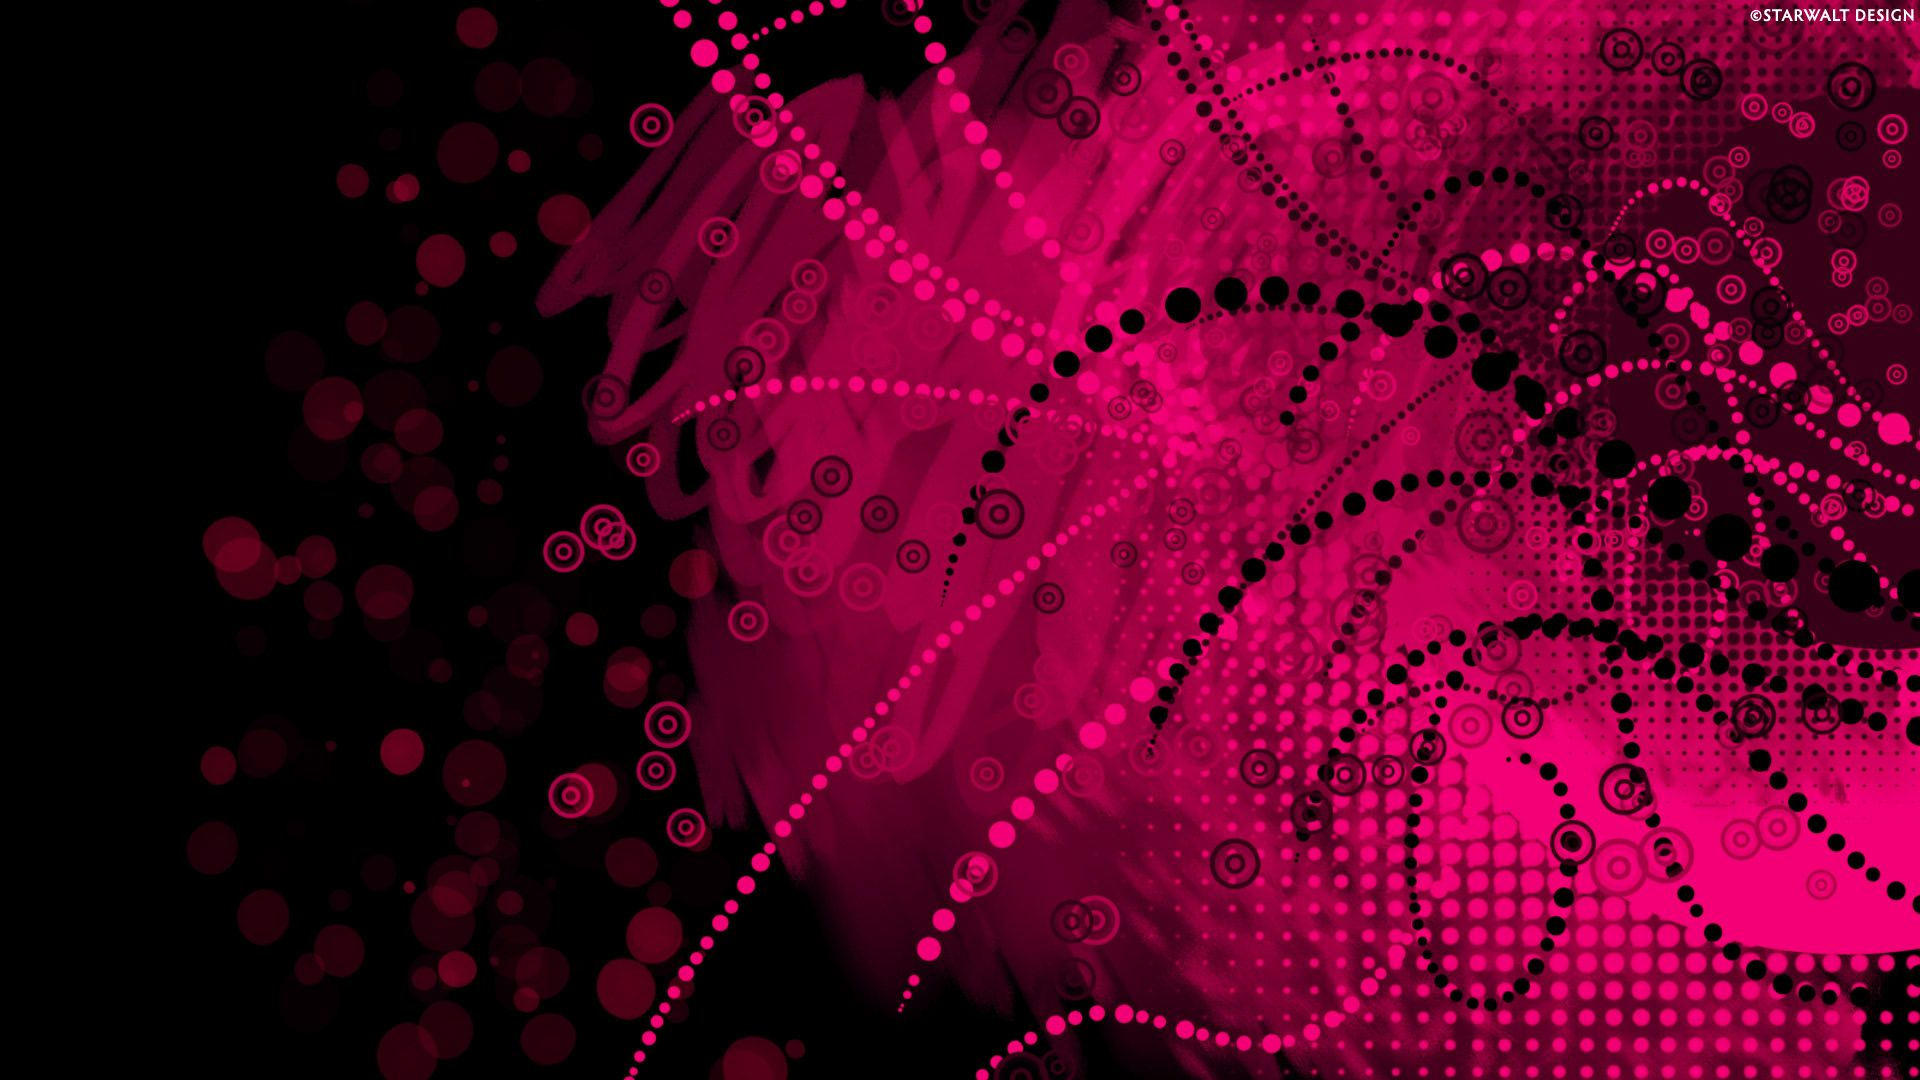 Pink Wallpaper Hd Wallpaper Pink And Black Wallpaper Pink Camo Wallpaper Black Background Wallpaper